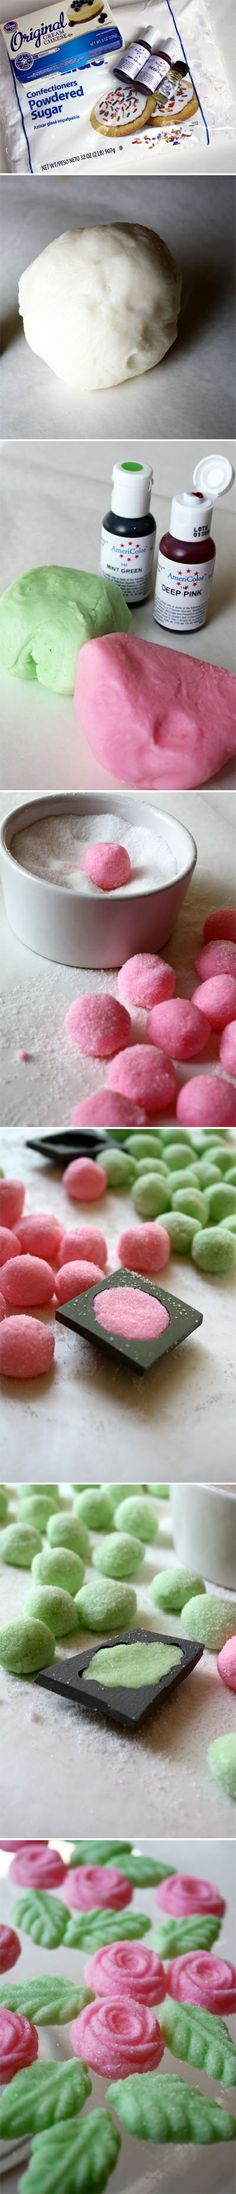 Cream Cheese Mints - oh wow - I remember my aunt making these when I was a kid!